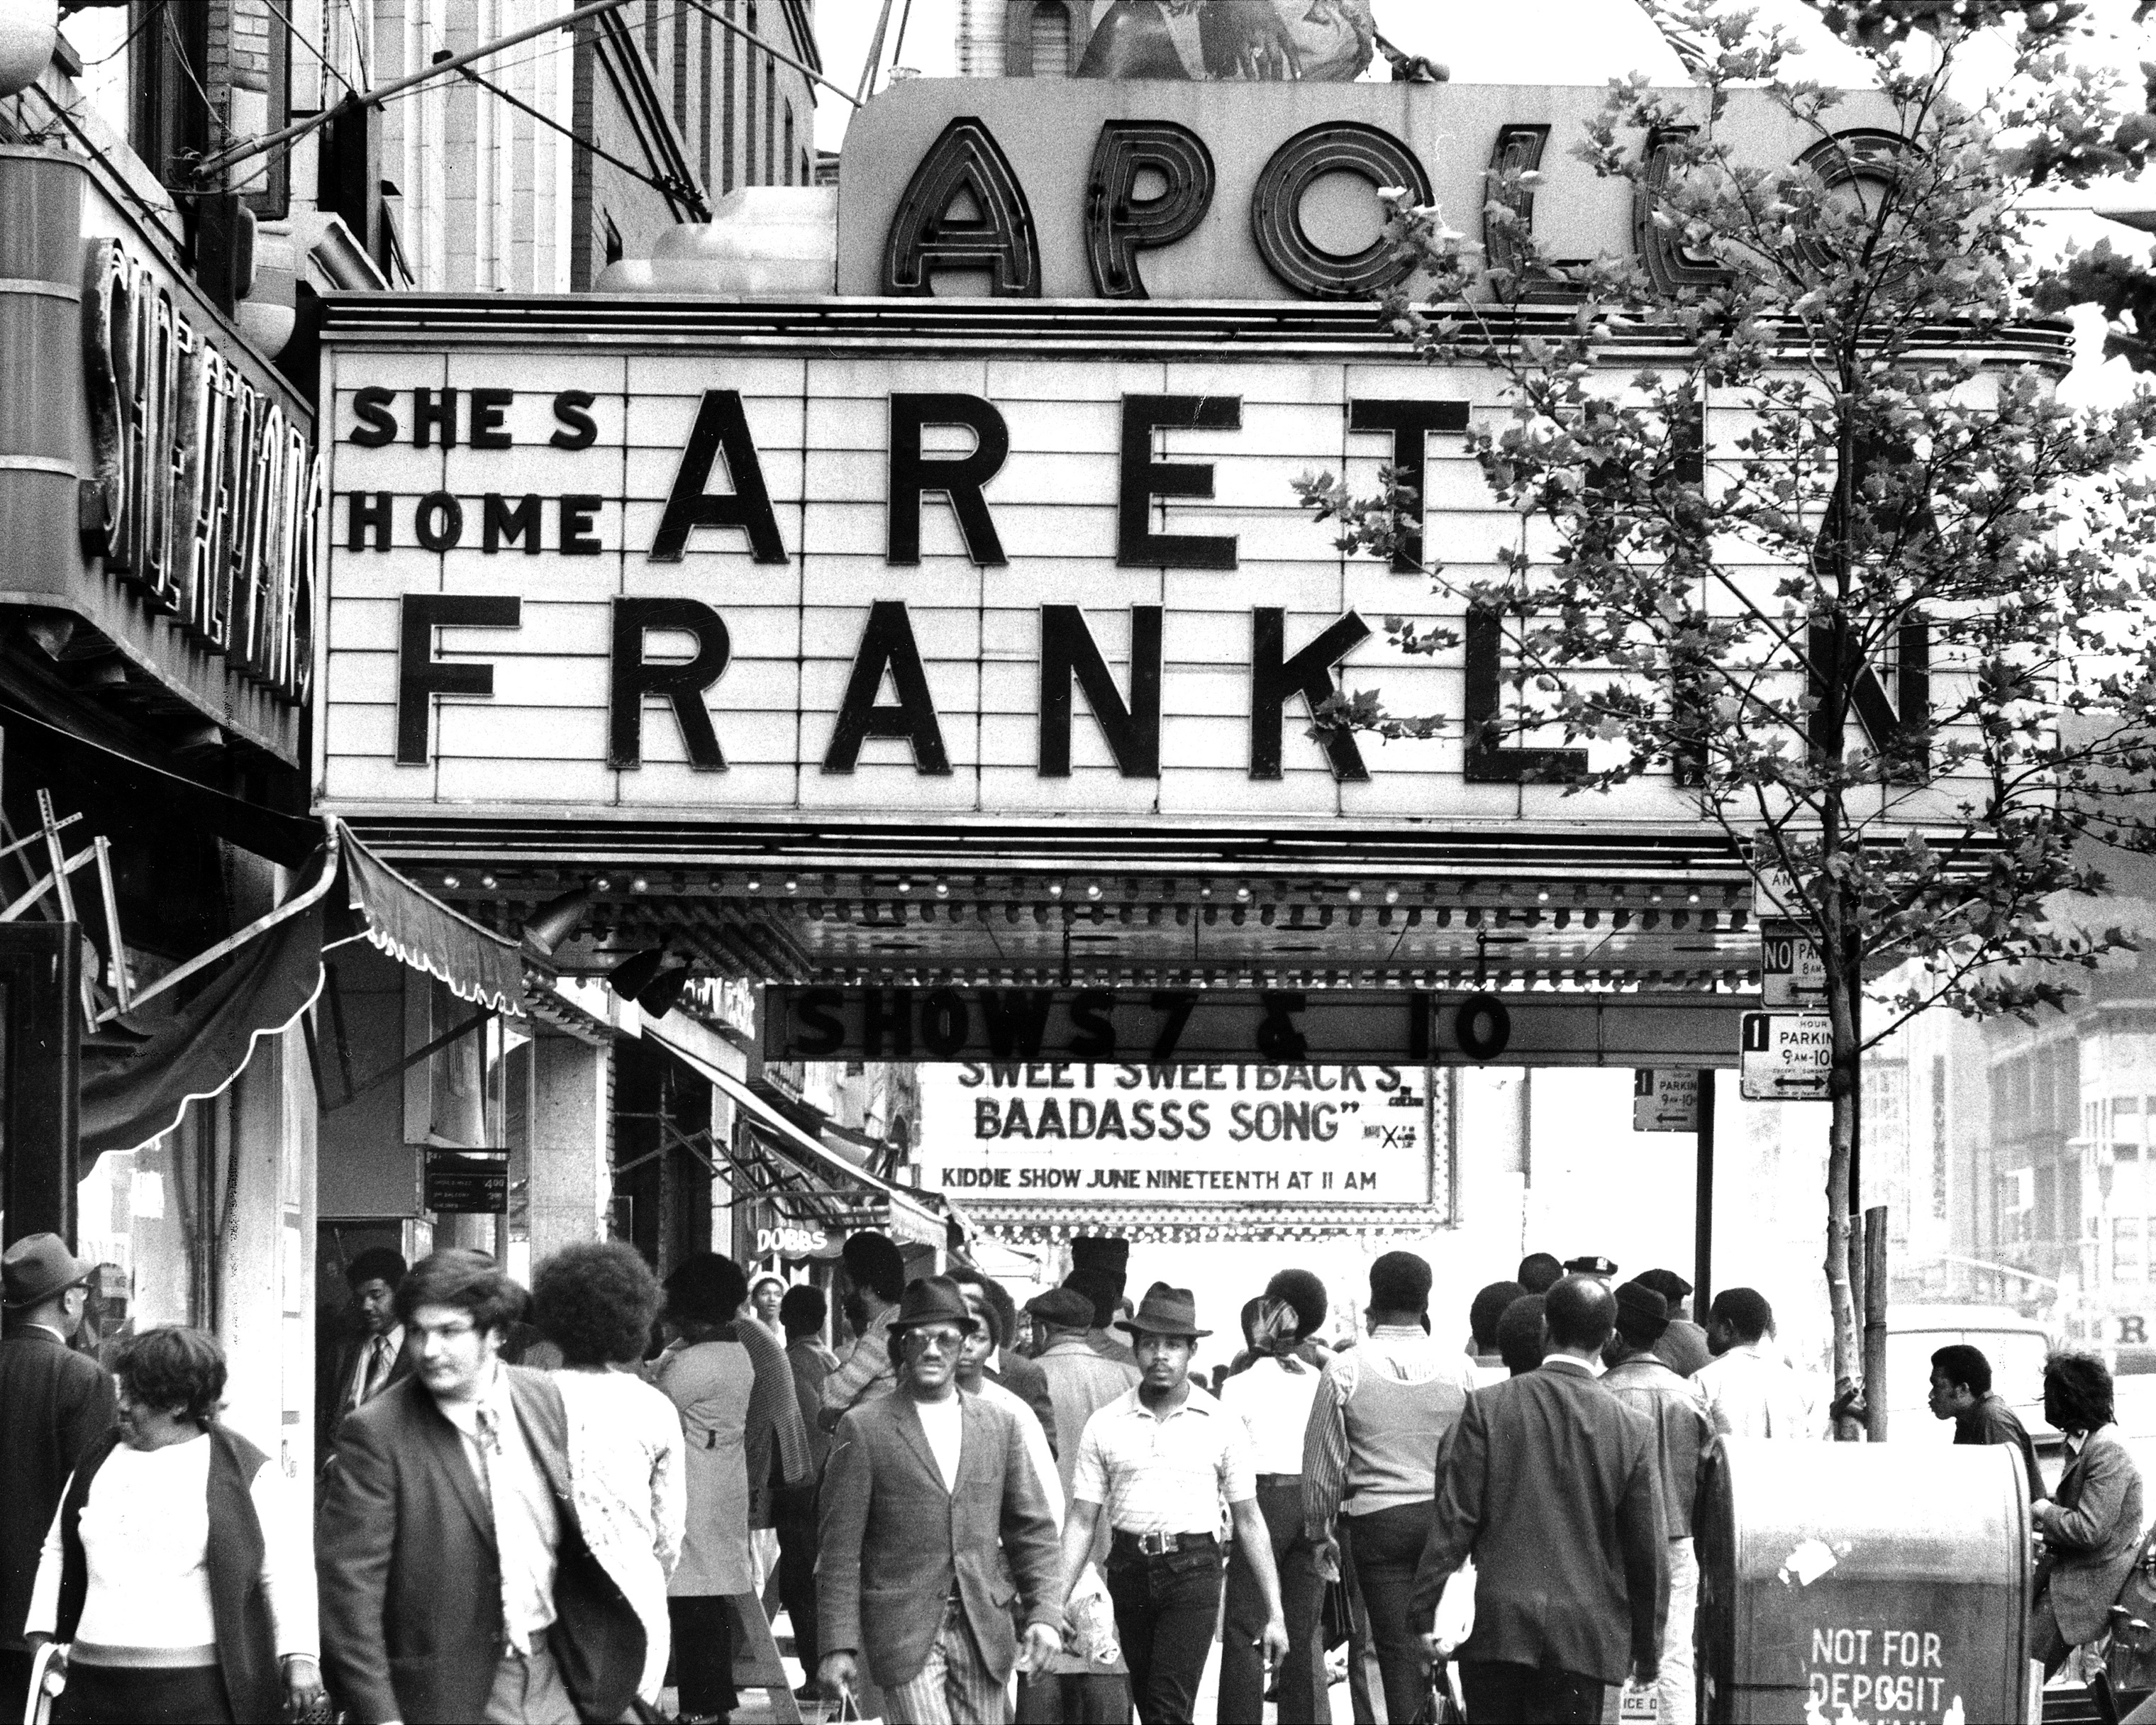 People wait on line to buy tickets to see Aretha Franklin at the Apollo Theatre in New York.